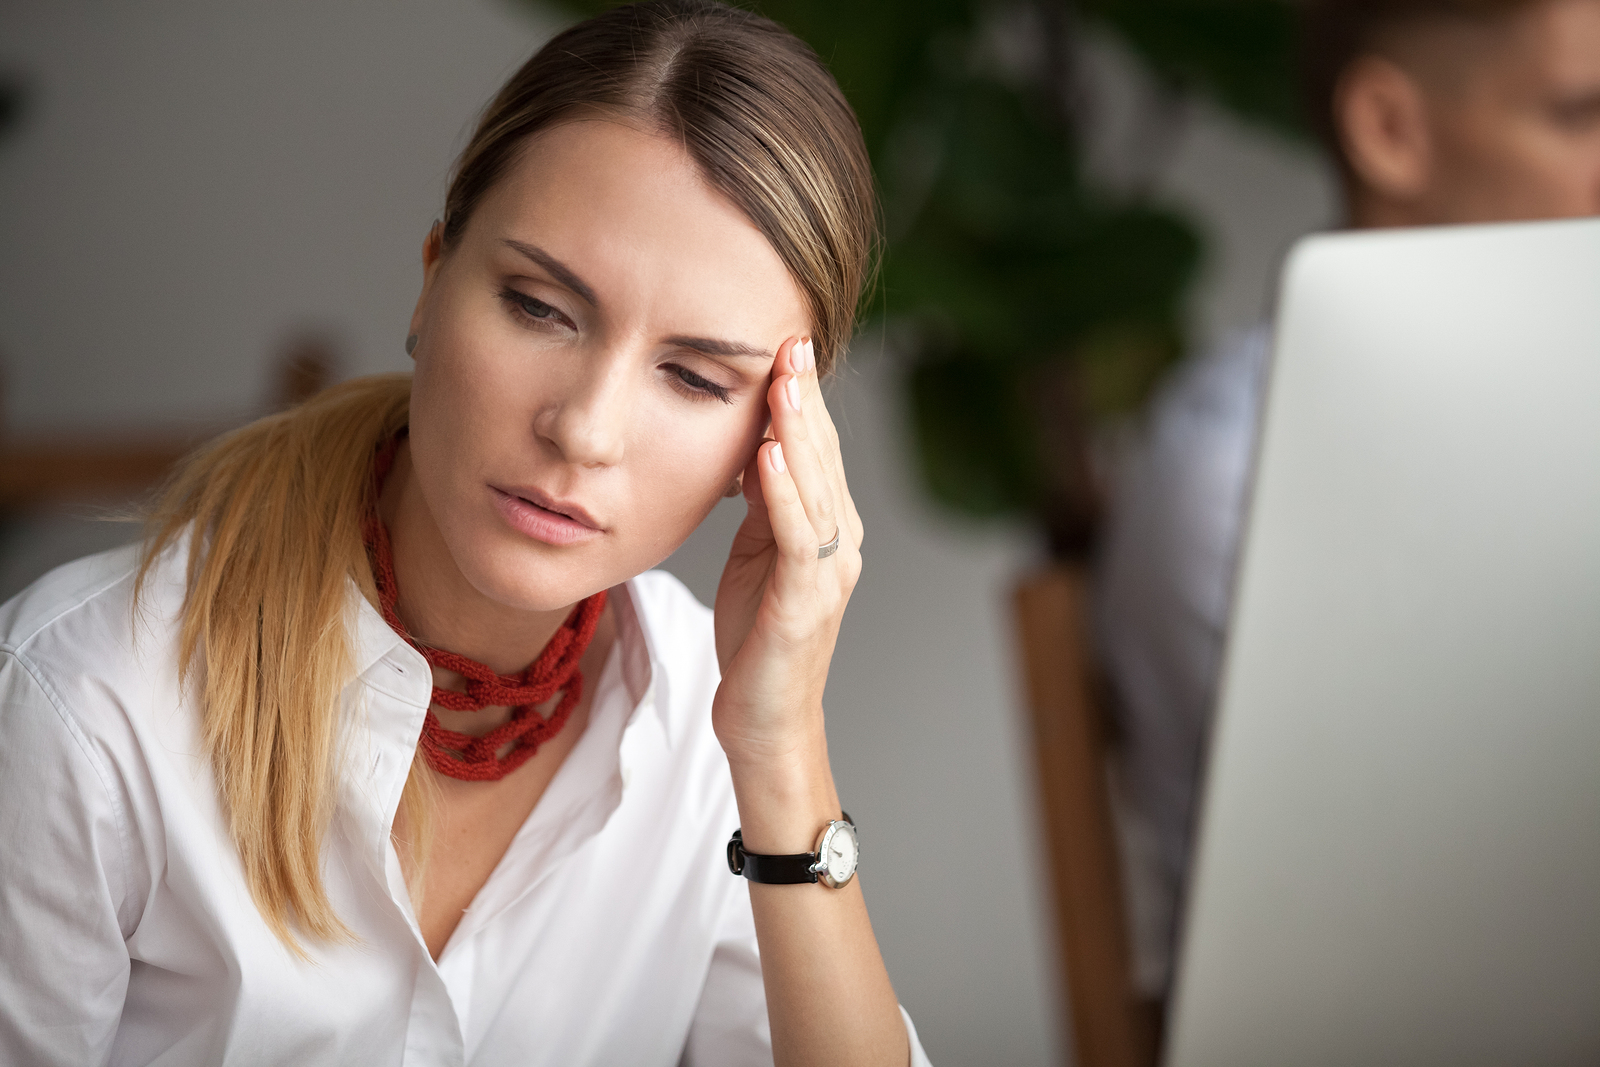 bigstock-Headache-At-Work-Concept-Stre-238359214.jpg